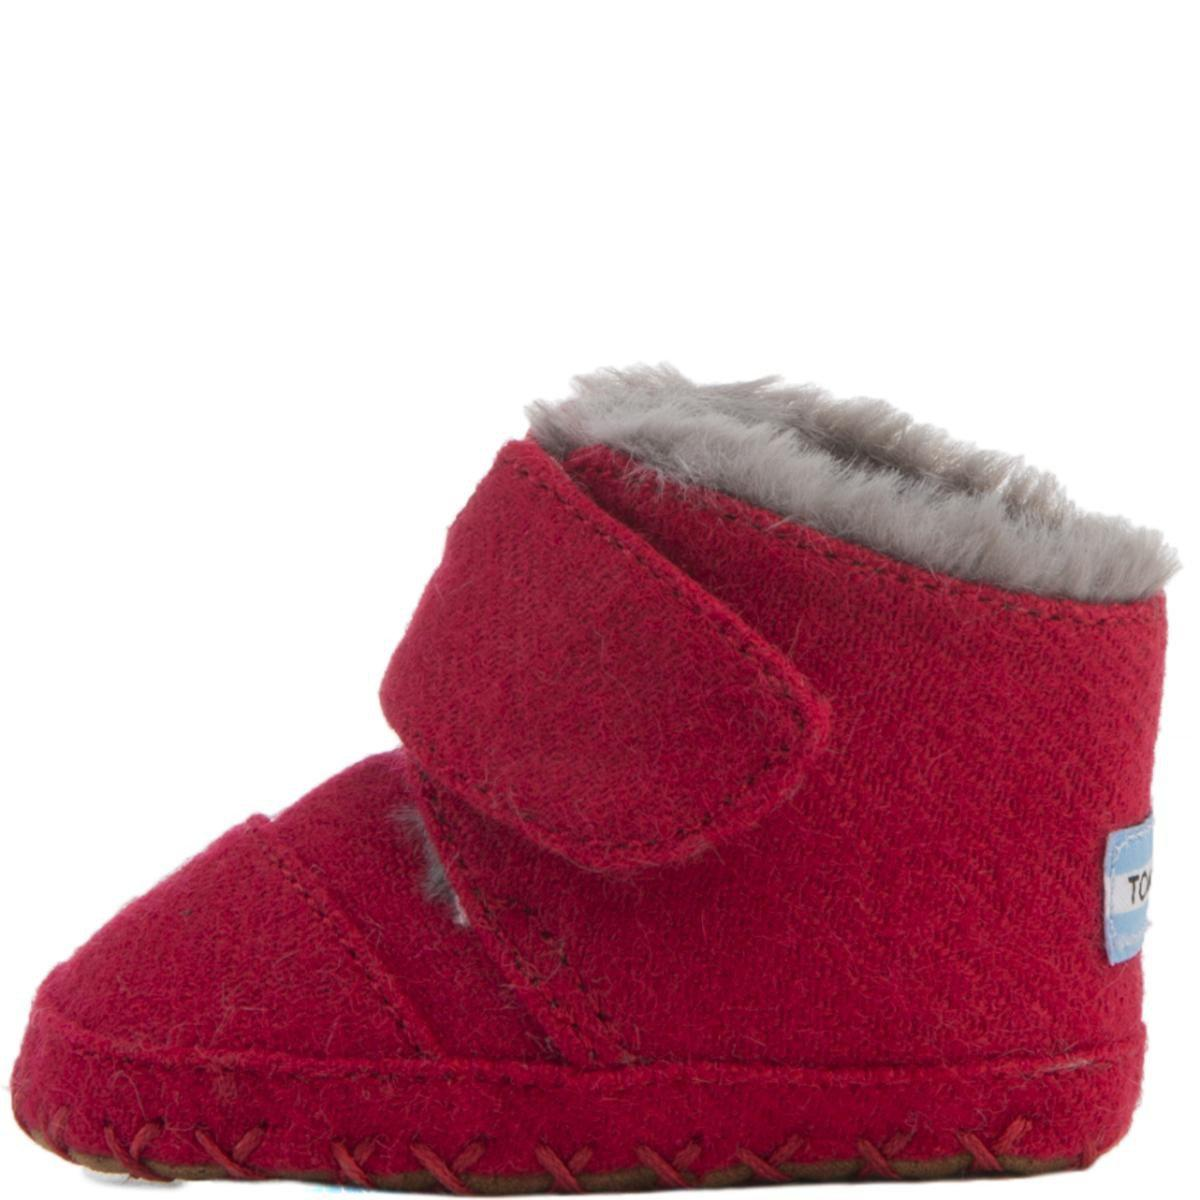 031e9032d22 Lyst - TOMS Tiny   Cuna Crib Shoes Red Felt in Red